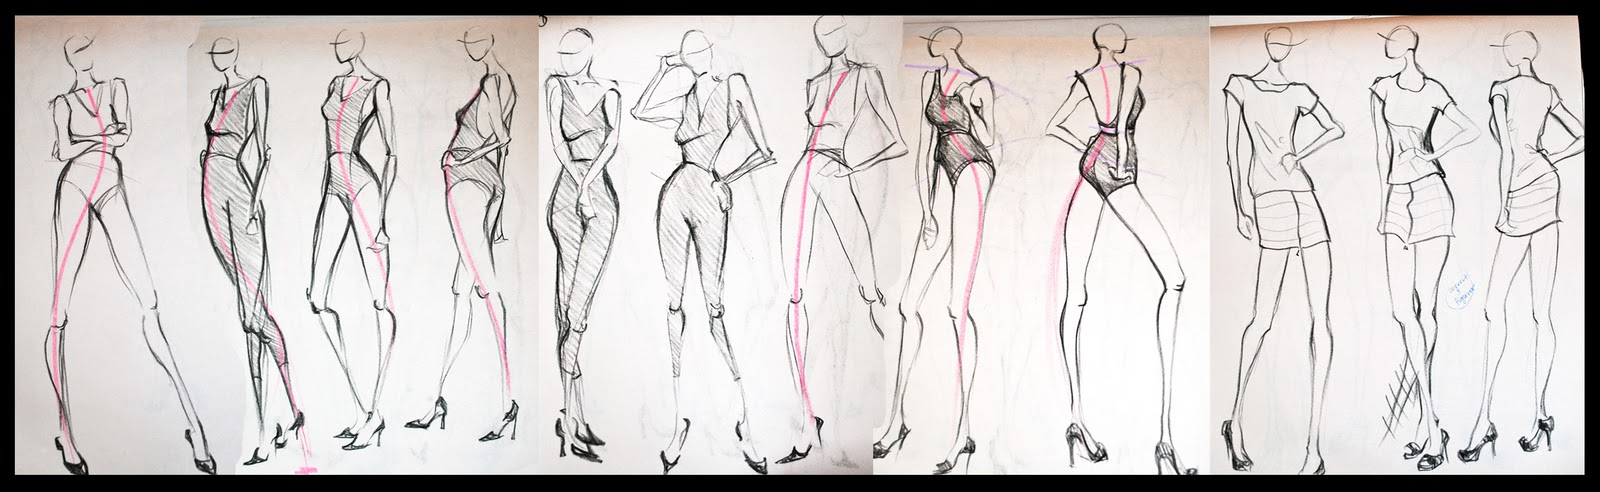 How to draw sketches for fashion design